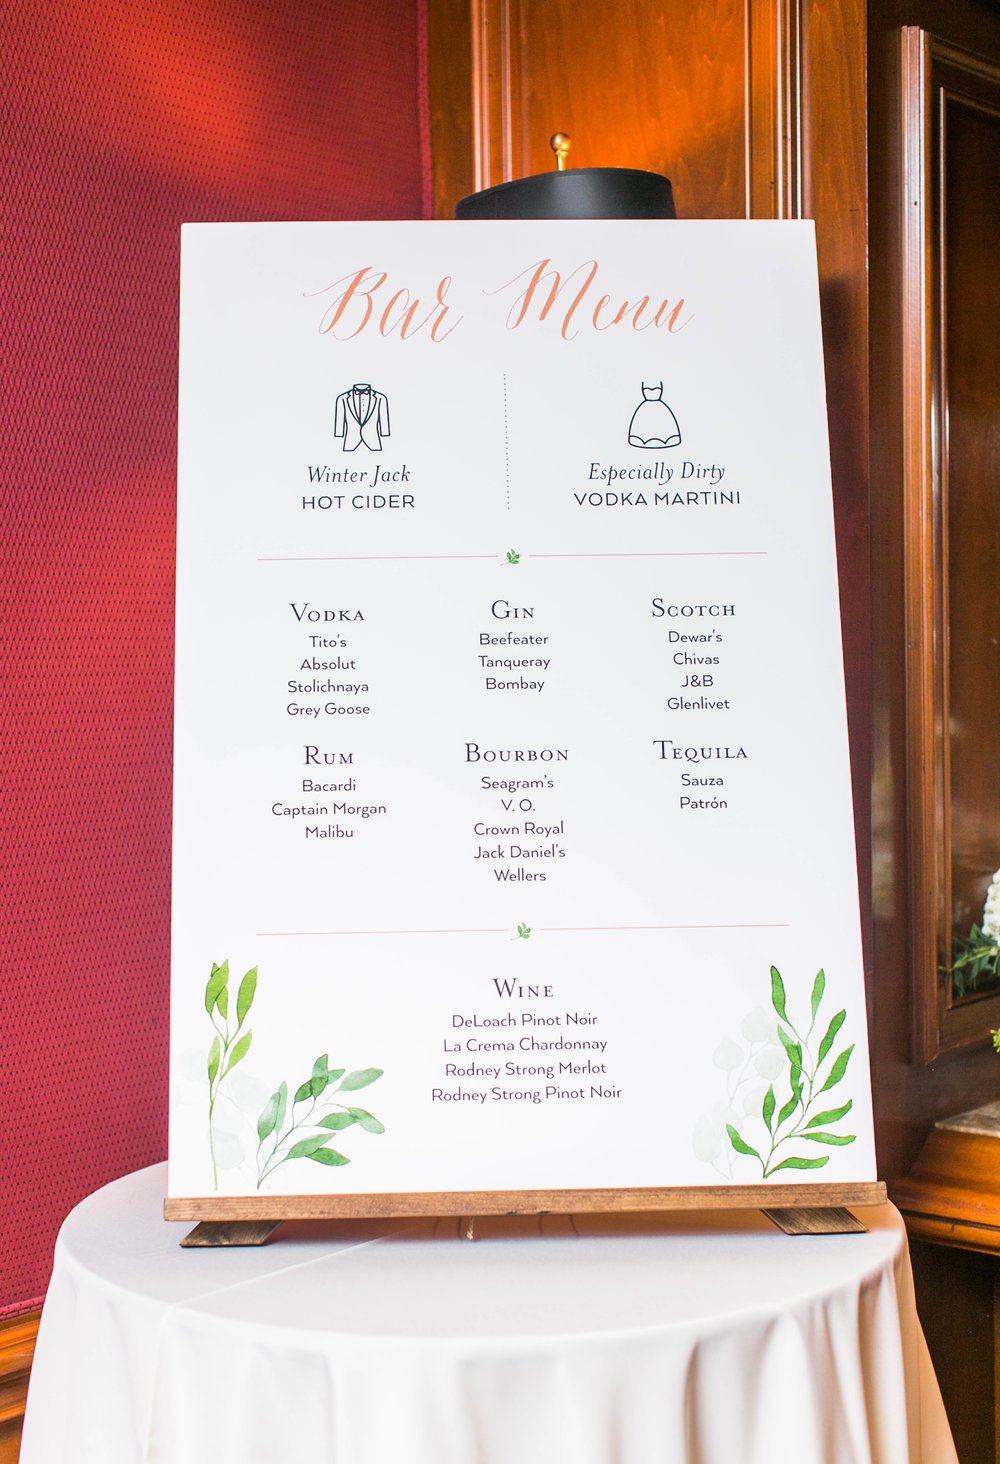 After the ceremony, there was a cocktail hour and a poster-sized bar menu.